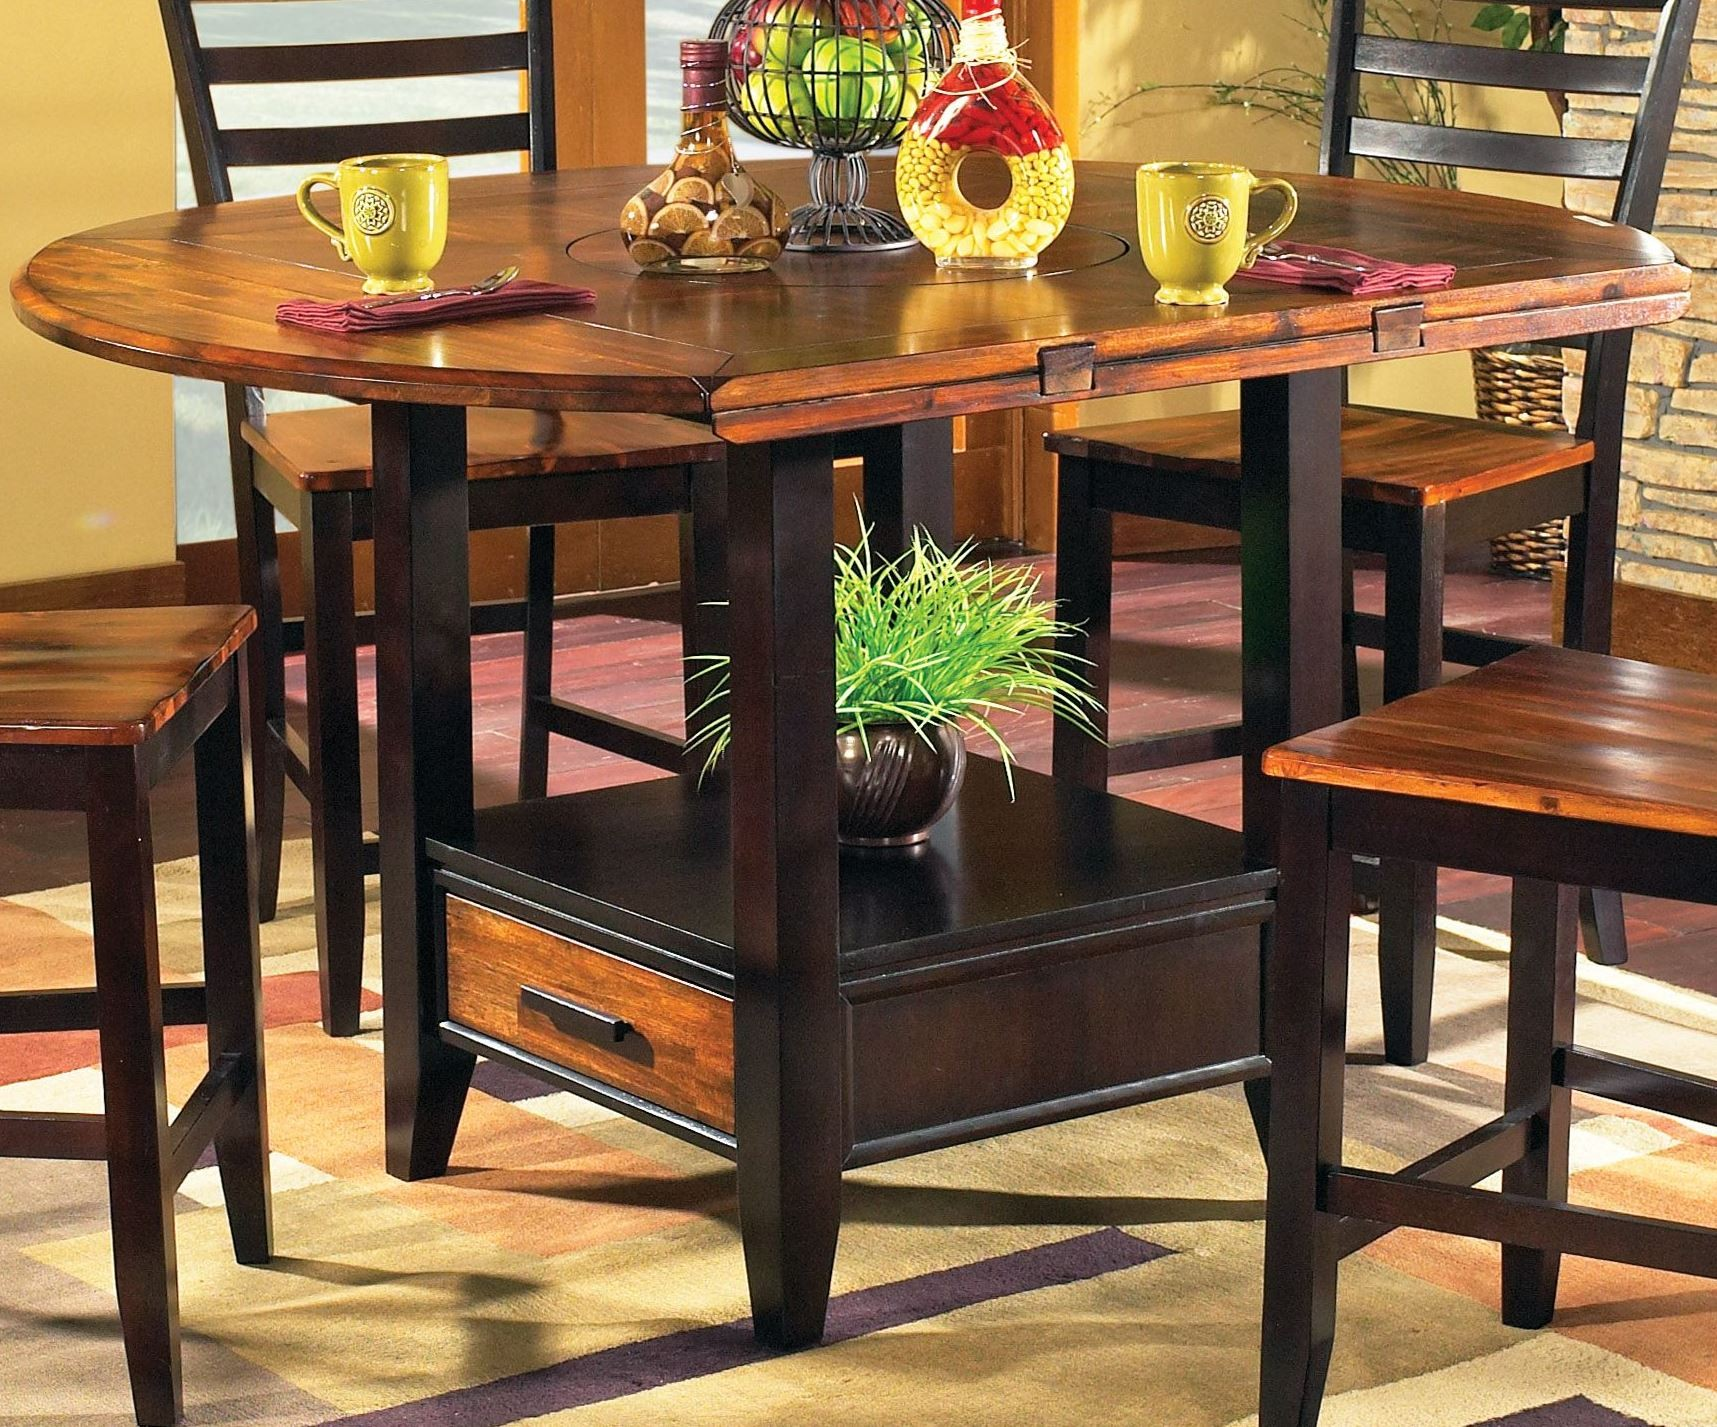 Abaco extendable round counter height dining table from for Counter height extendable dining table